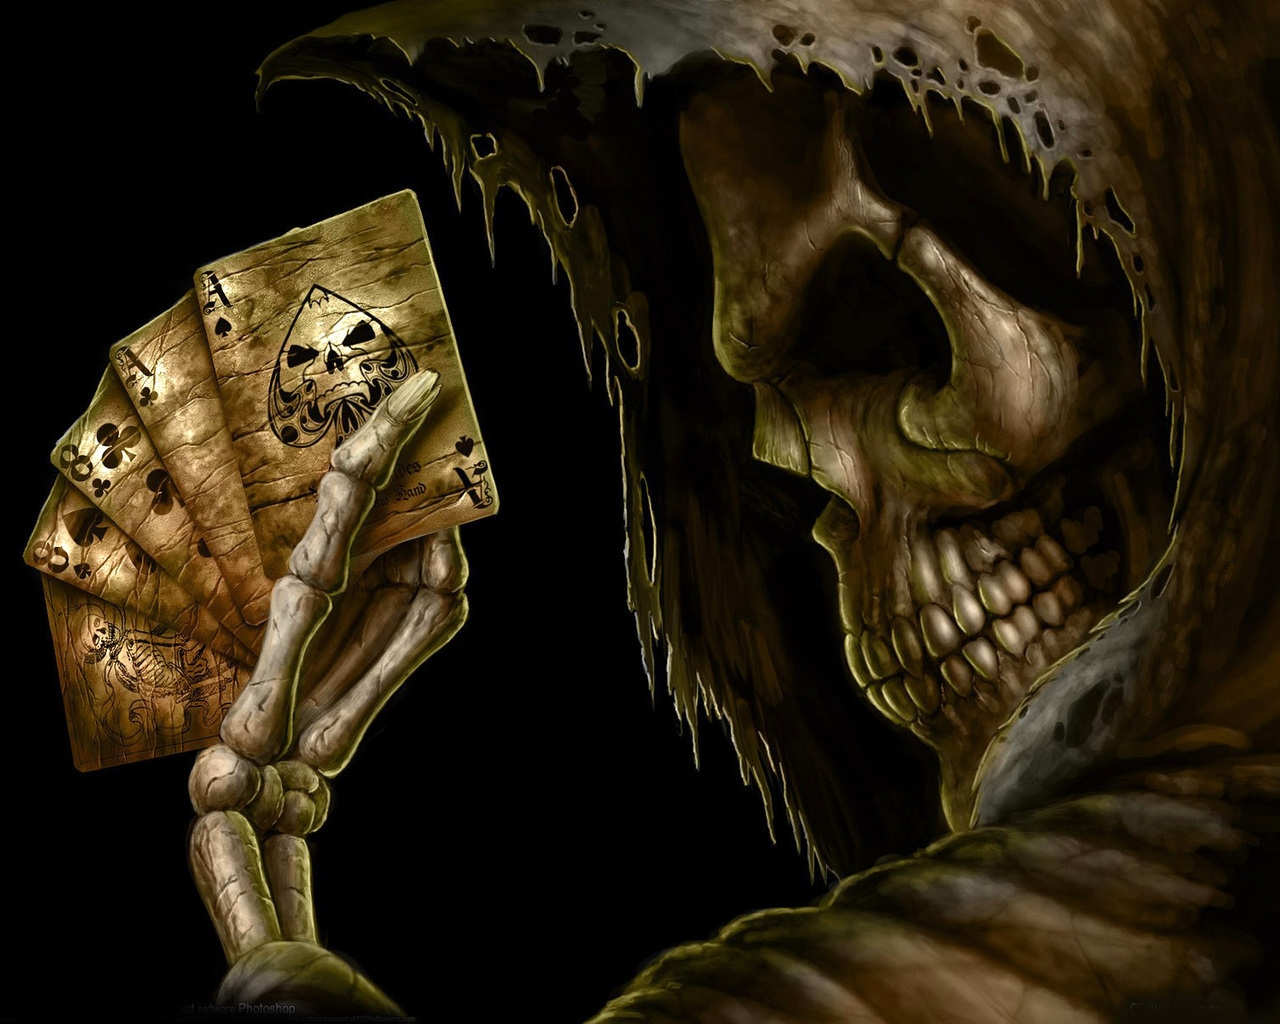 http://1.bp.blogspot.com/-BqtwUueUmoM/TqPQcbX8yZI/AAAAAAAACpU/HYHAKy960eM/s1600/Skull+_wallpapers_Skeleton+Card+Player.jpg